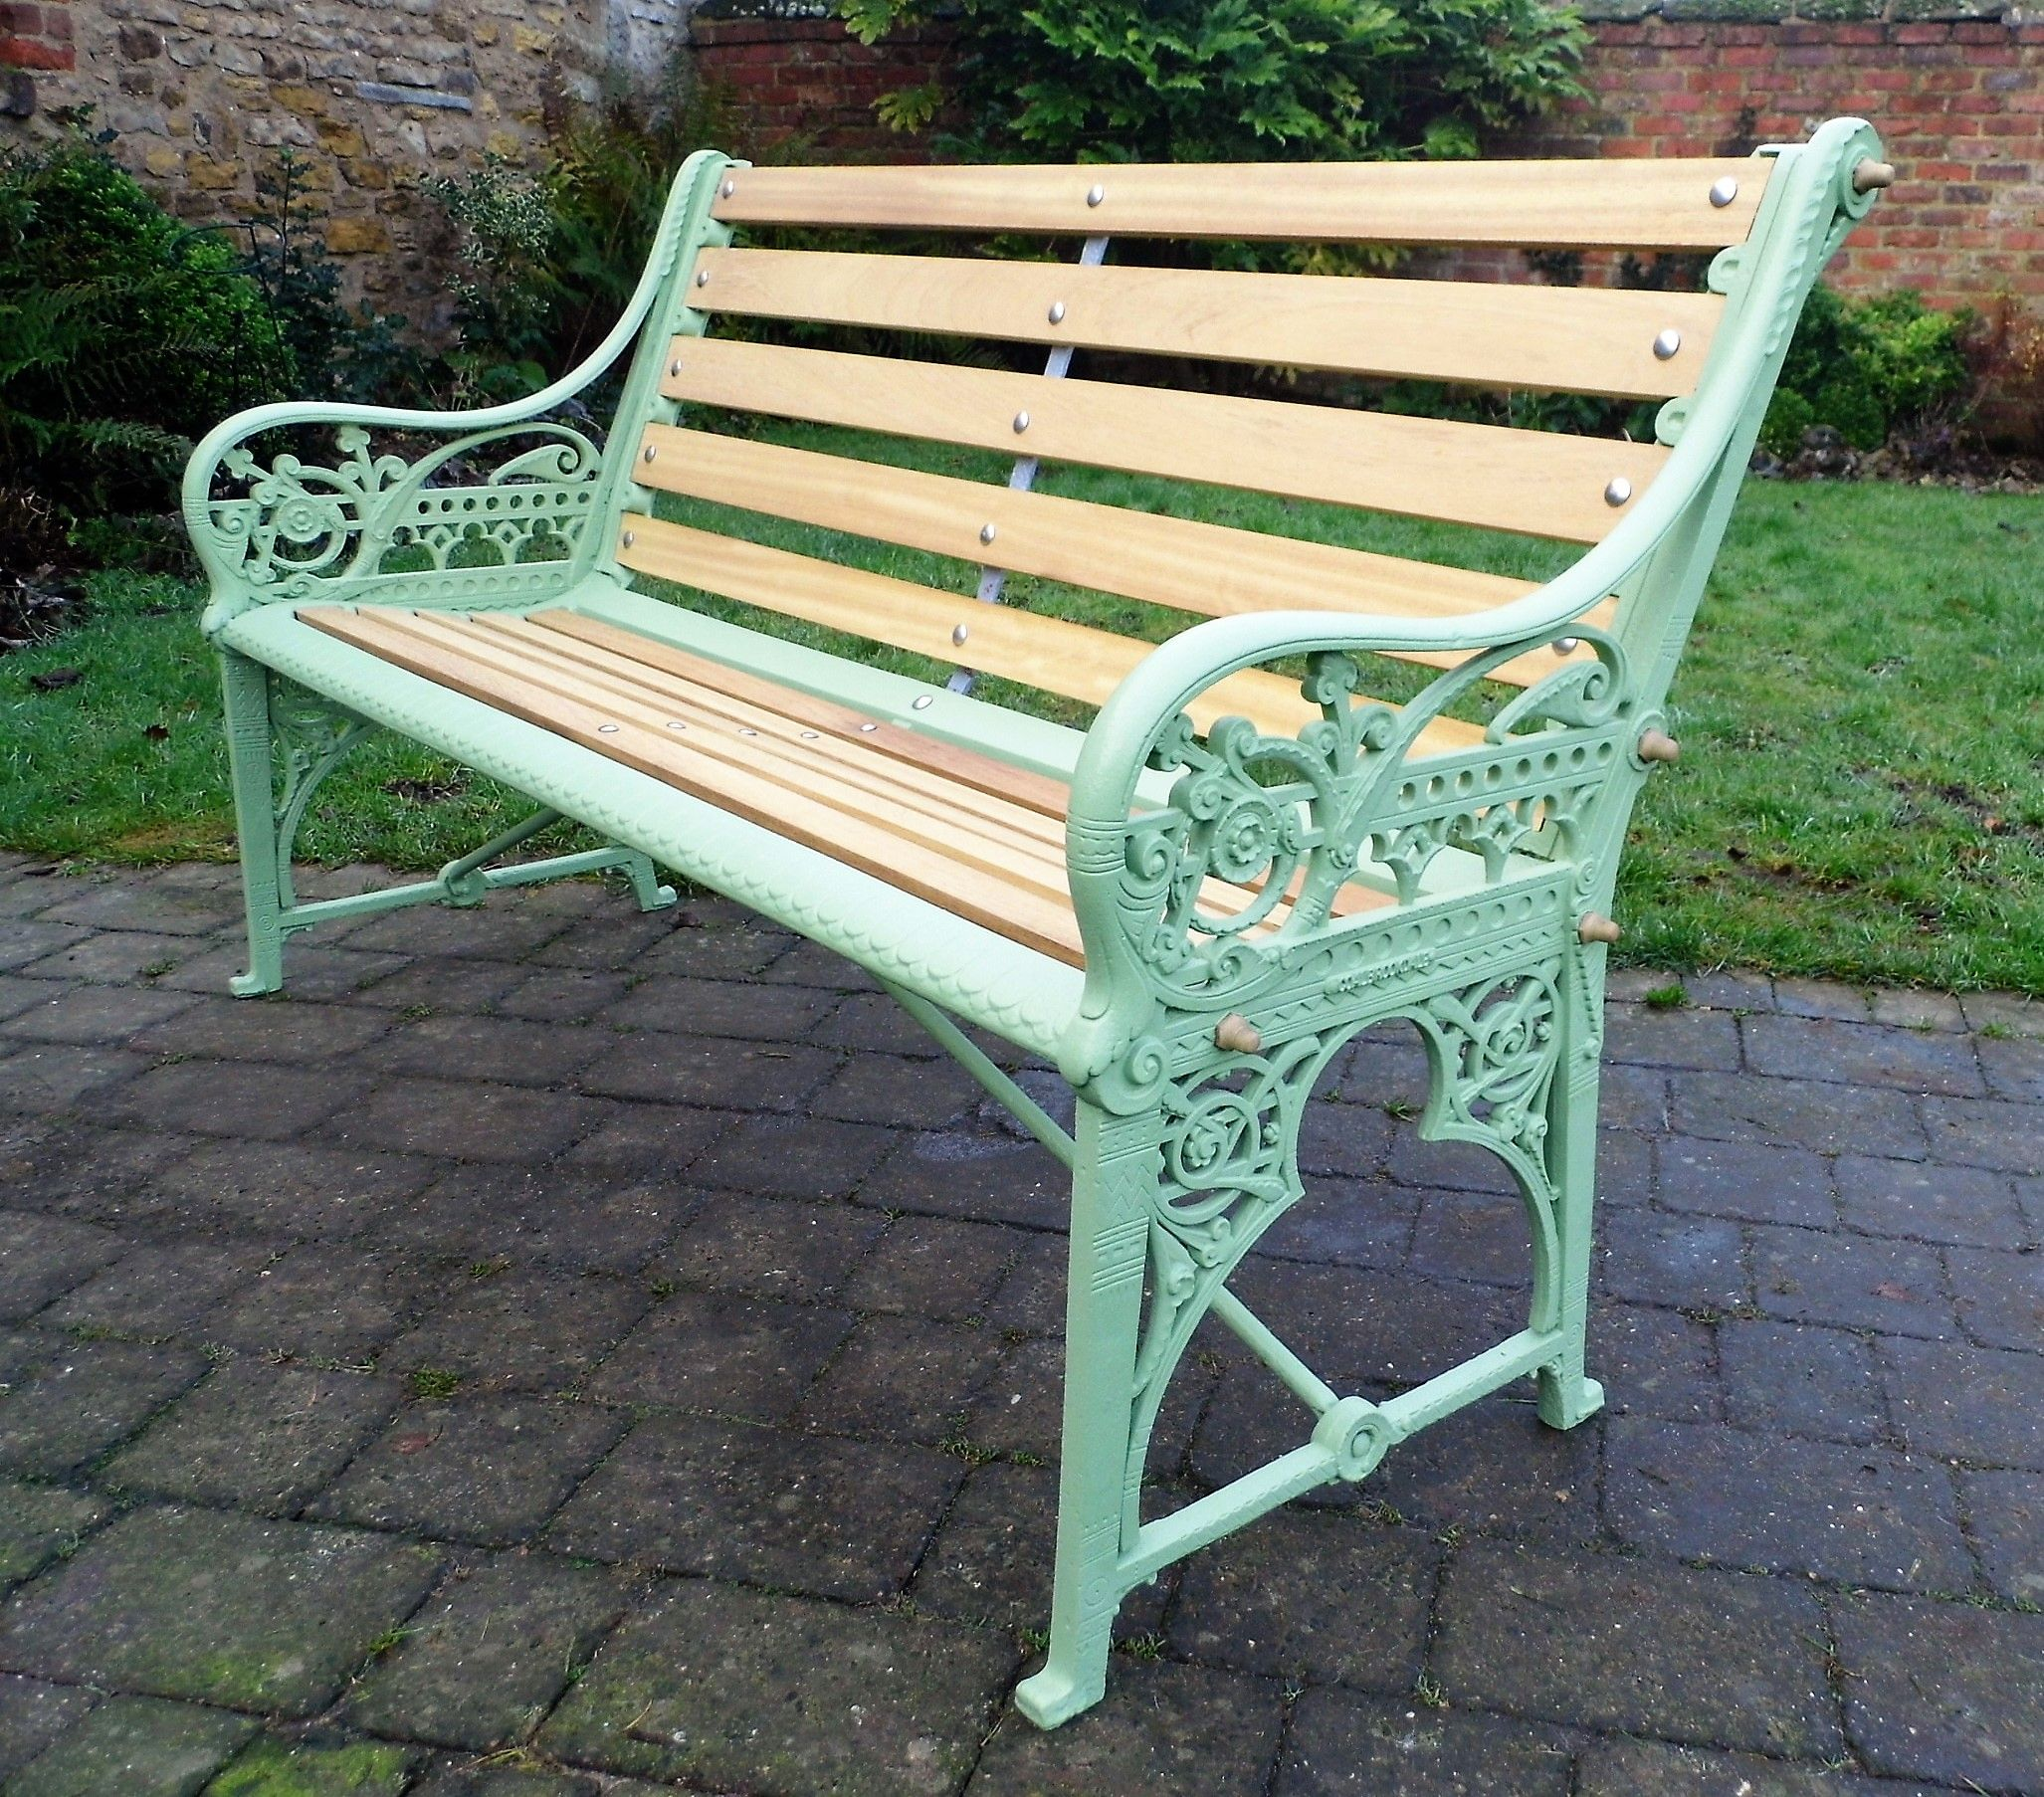 Terrific Coalbrookdale Medieval Cast Iron Bench Get In Touch For A Machost Co Dining Chair Design Ideas Machostcouk